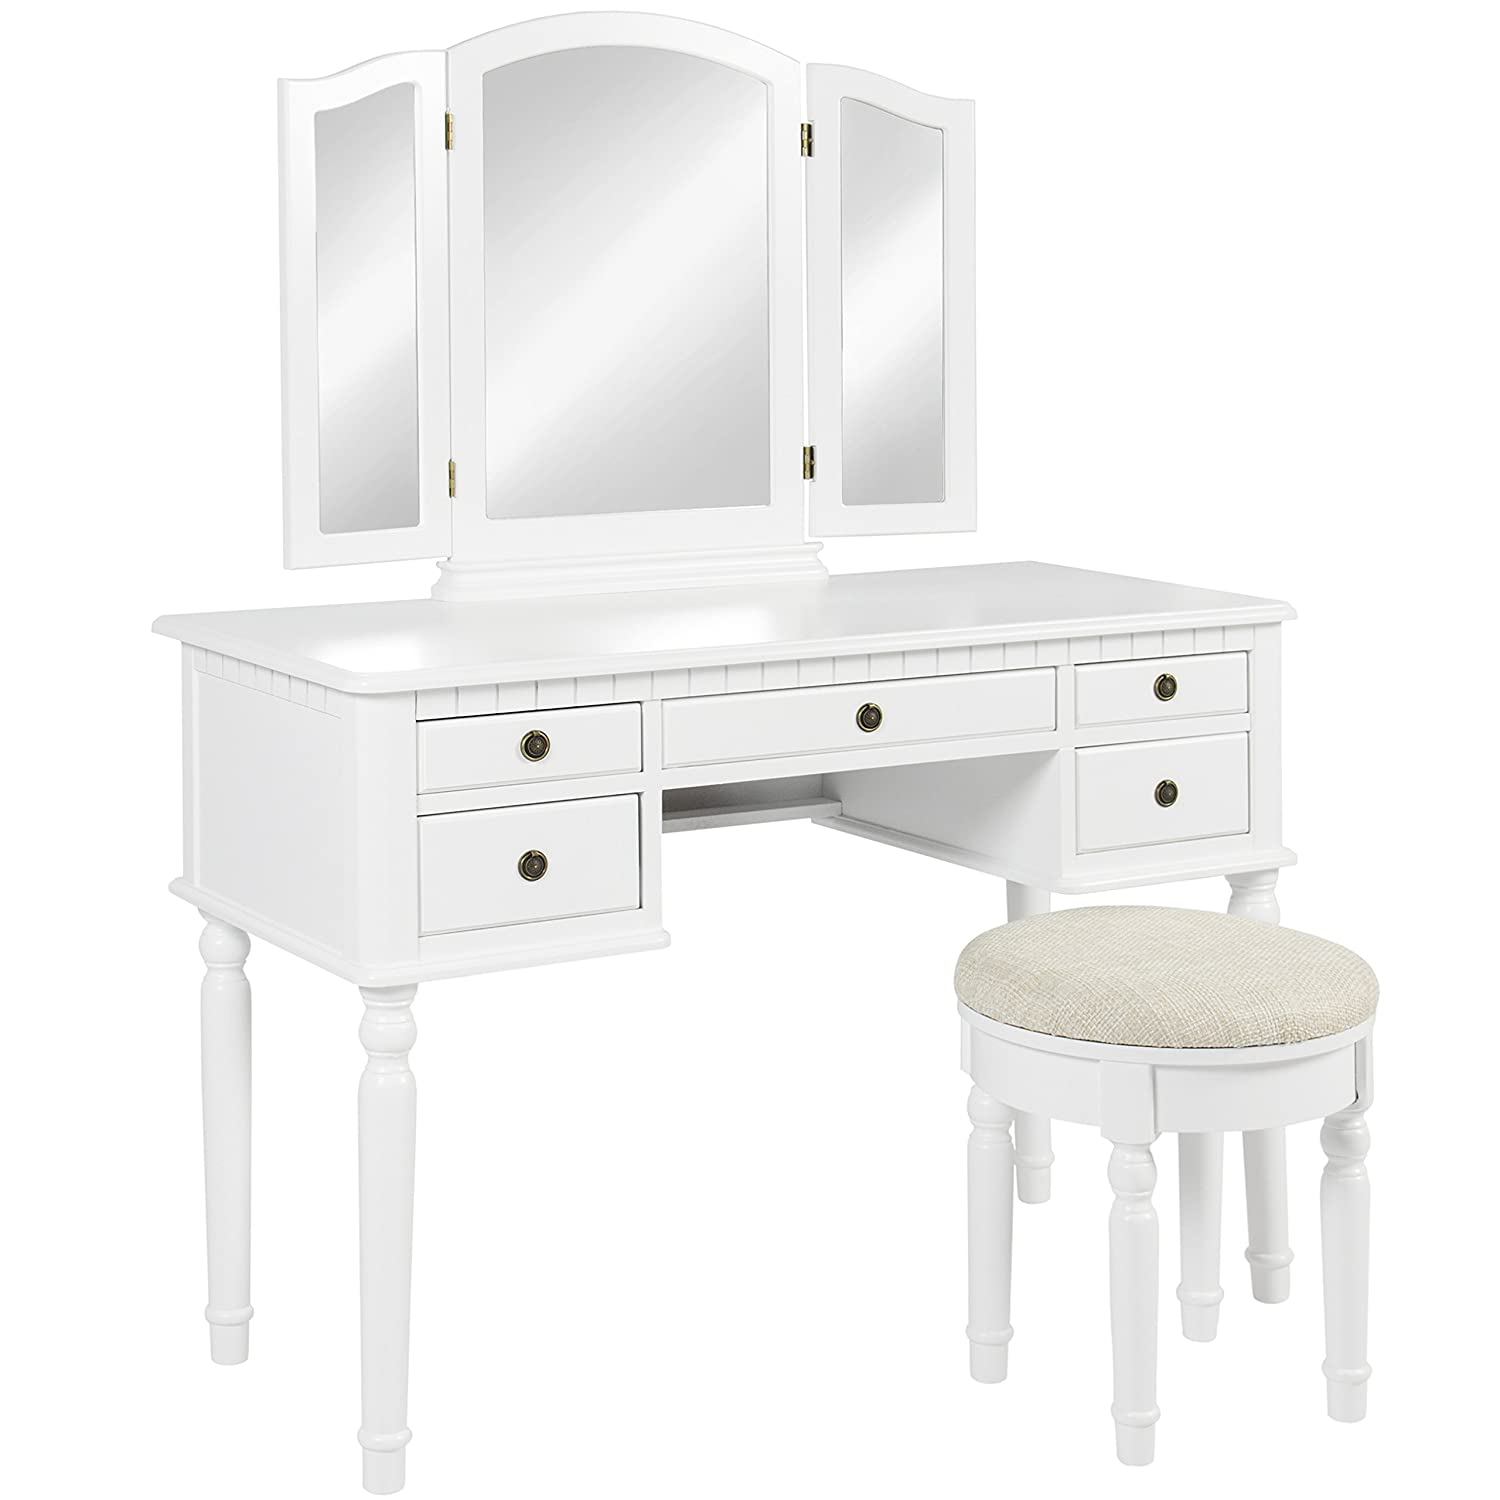 ideas cheap makeup picture with set and off small collection lighting mirror sets kids stool dresser foamy table vanity bedroom lighted bathroom target mirrored white dressing glass gallery of lights black images